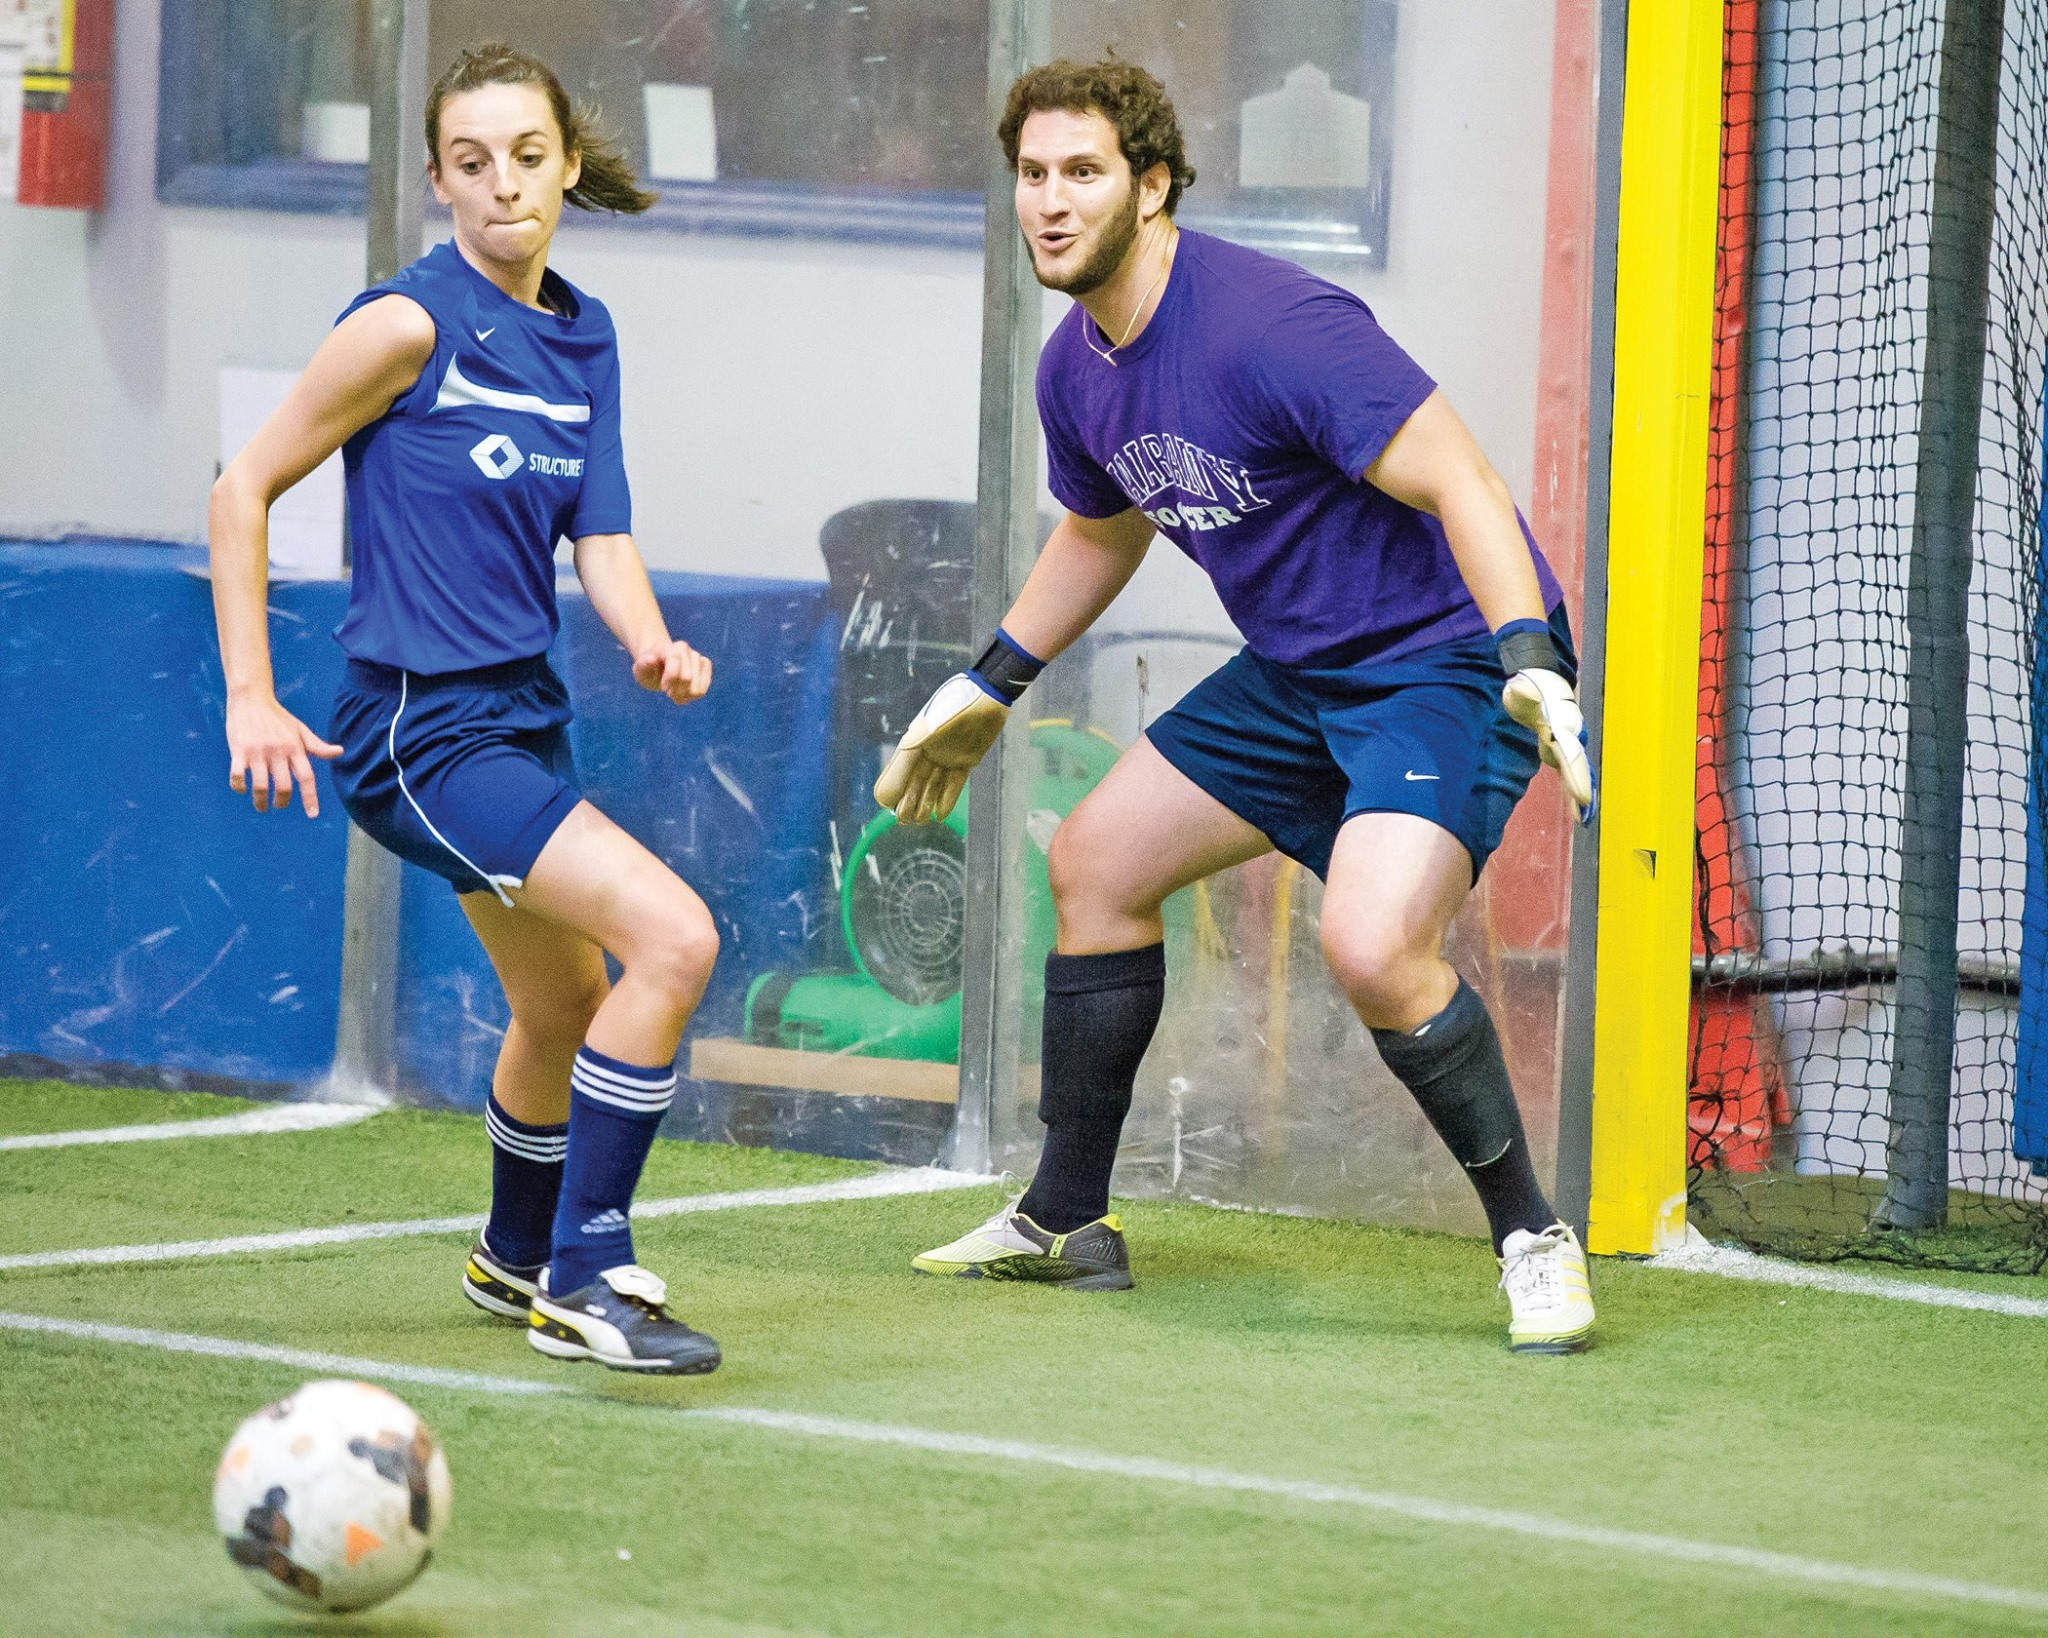 Chelsea Piers is a New York place for sports and enjoyment, ideal for making new friends